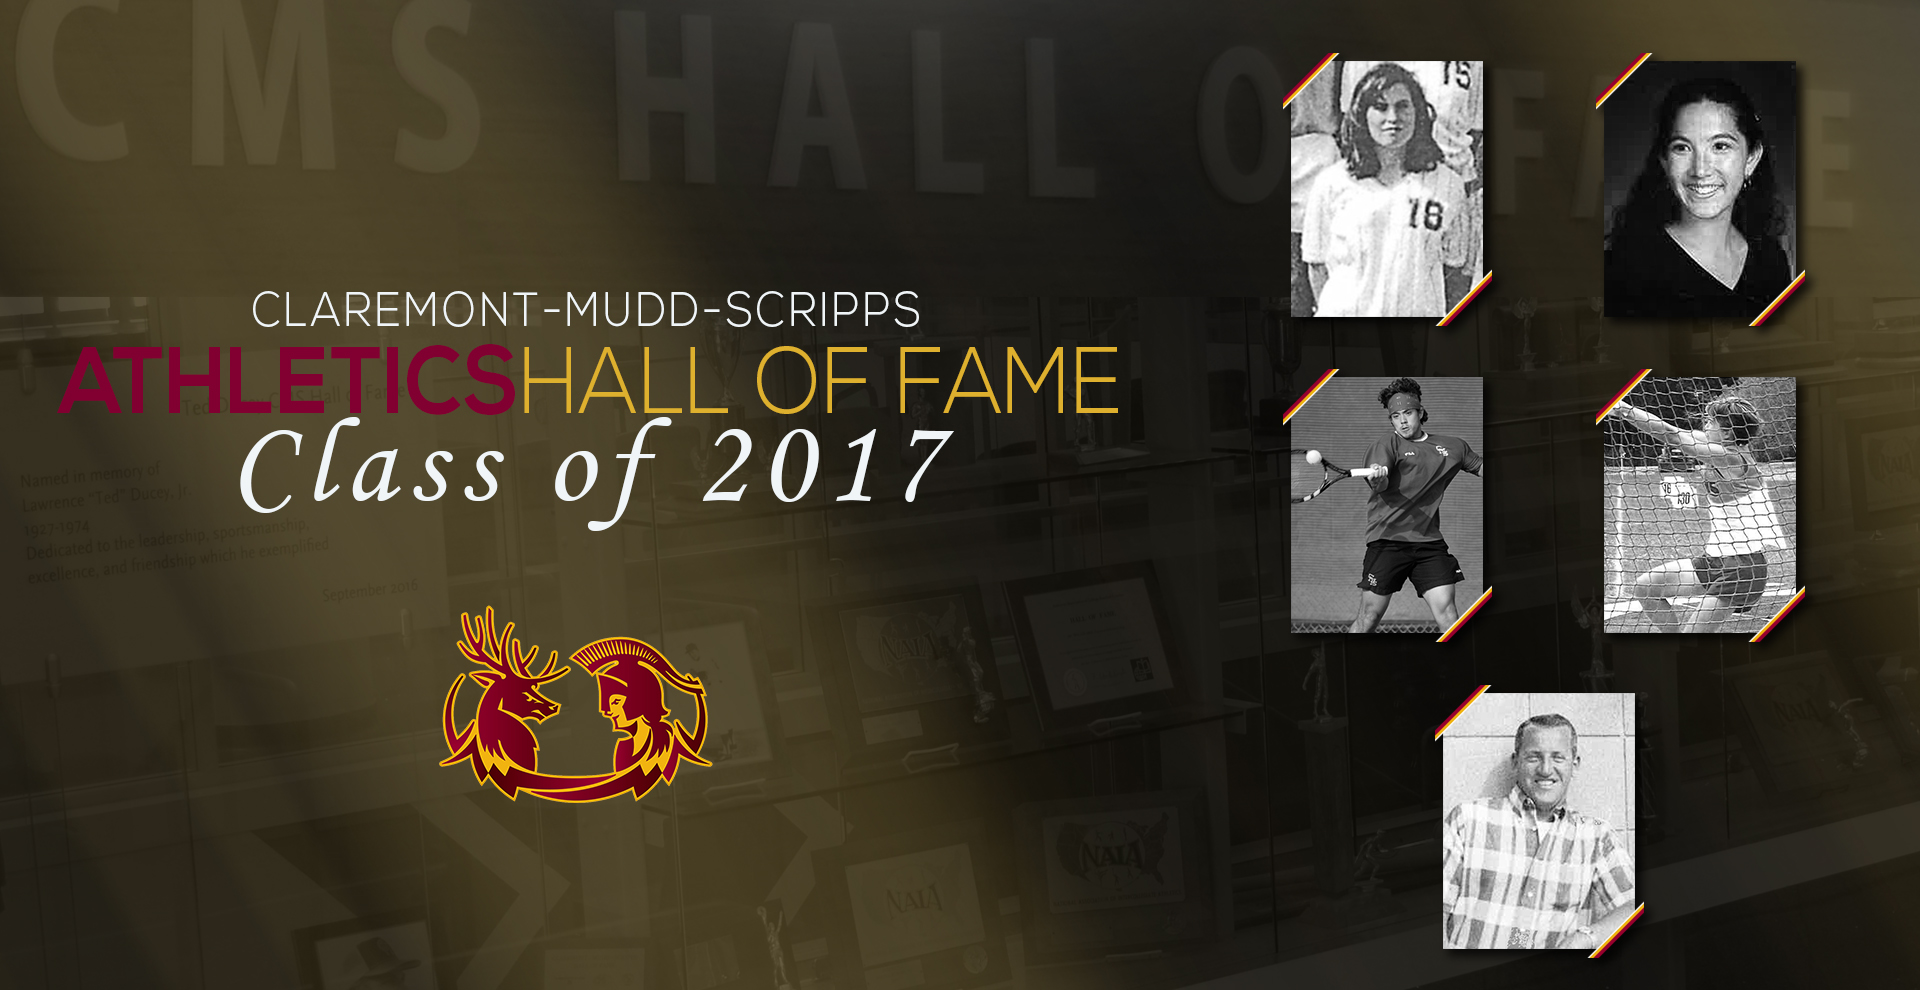 Five decades of greatness represented in the 2017 CMS Hall of Fame class